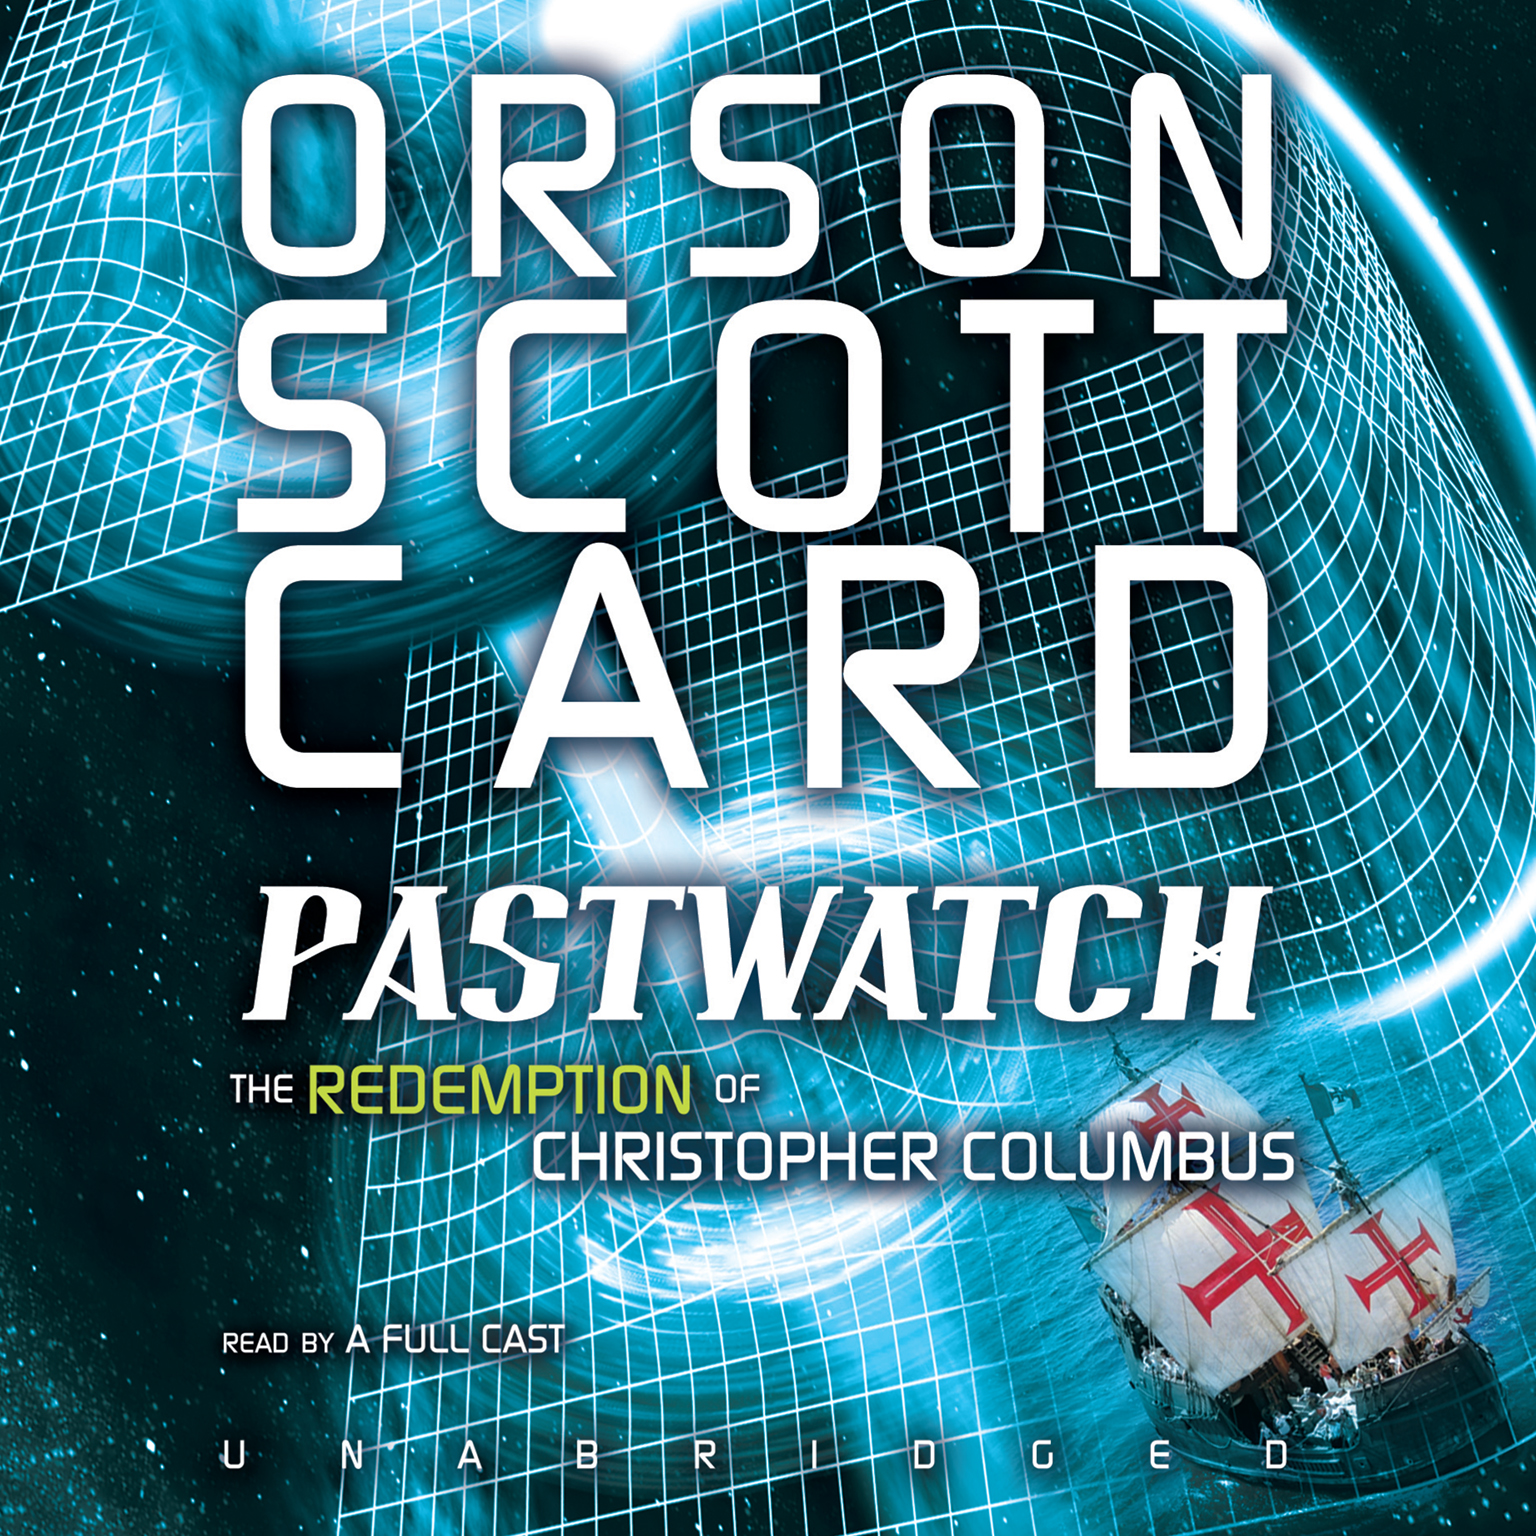 Printable Pastwatch: The Redemption of Christopher Columbus Audiobook Cover Art